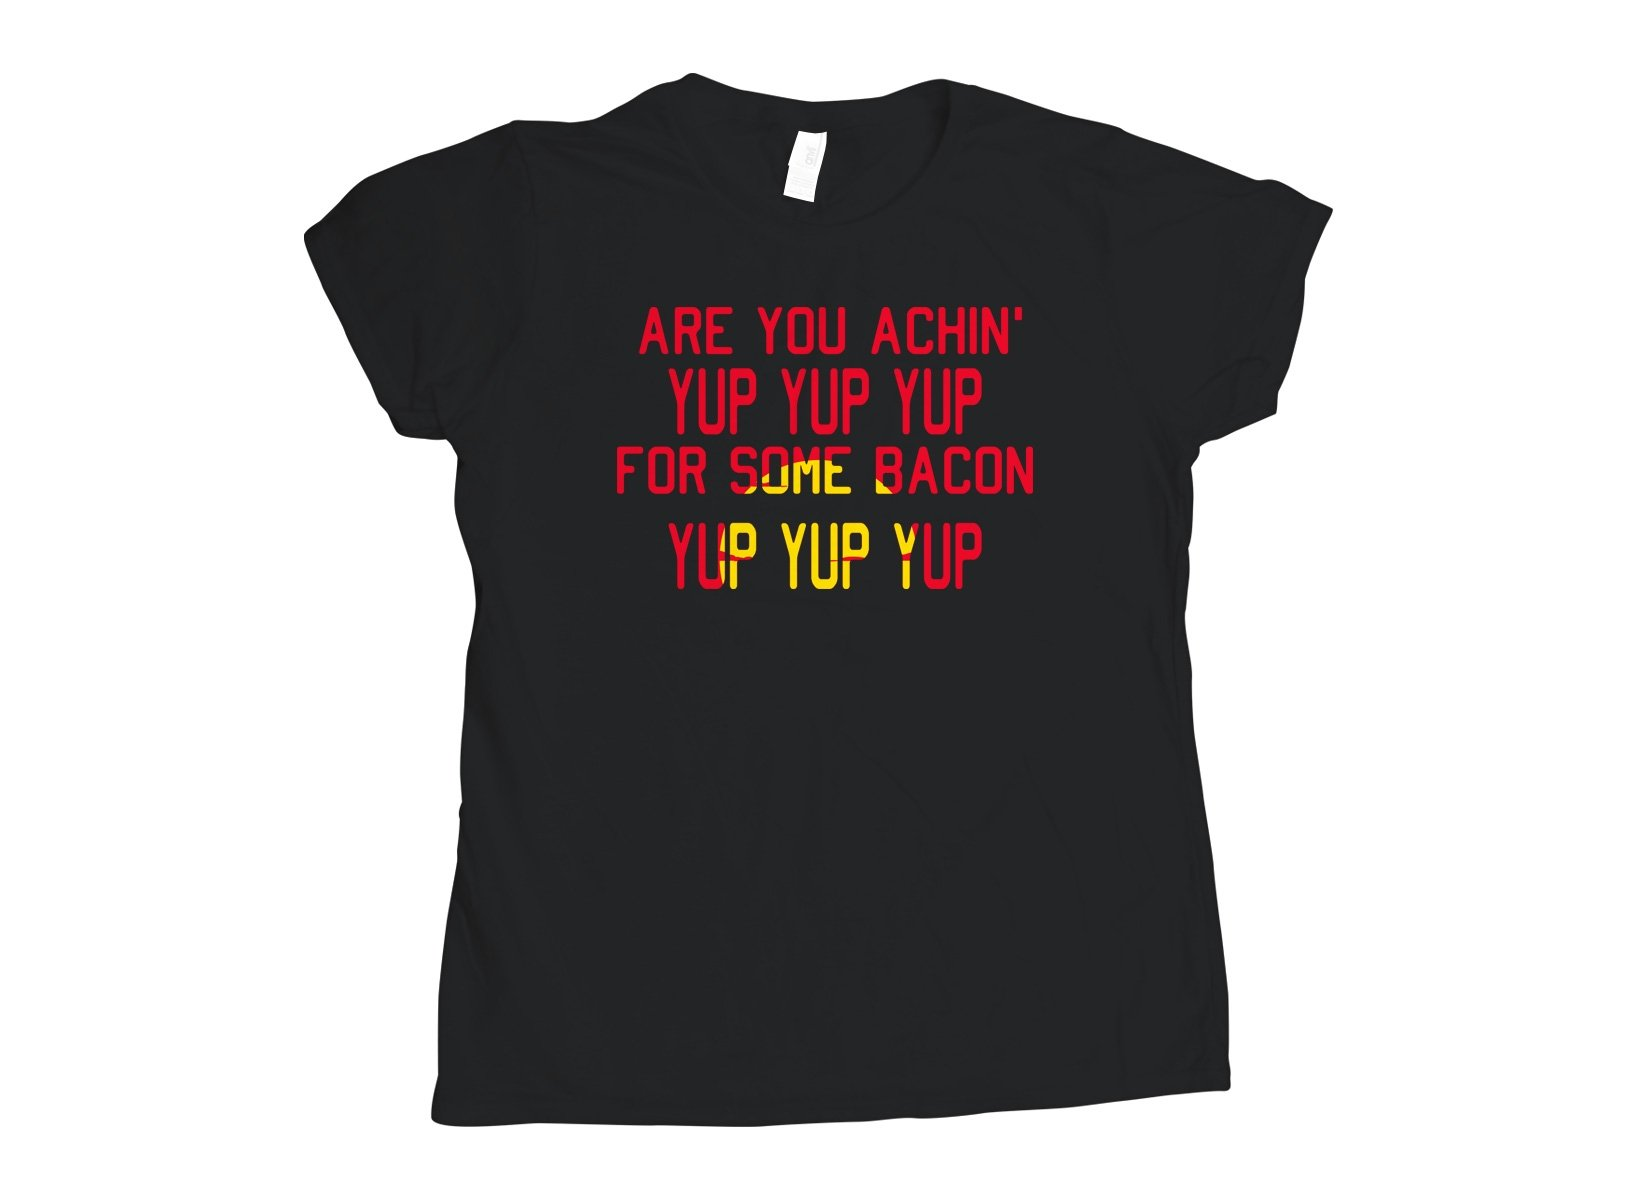 Are You Achin' For Some Bacon? on Womens T-Shirt